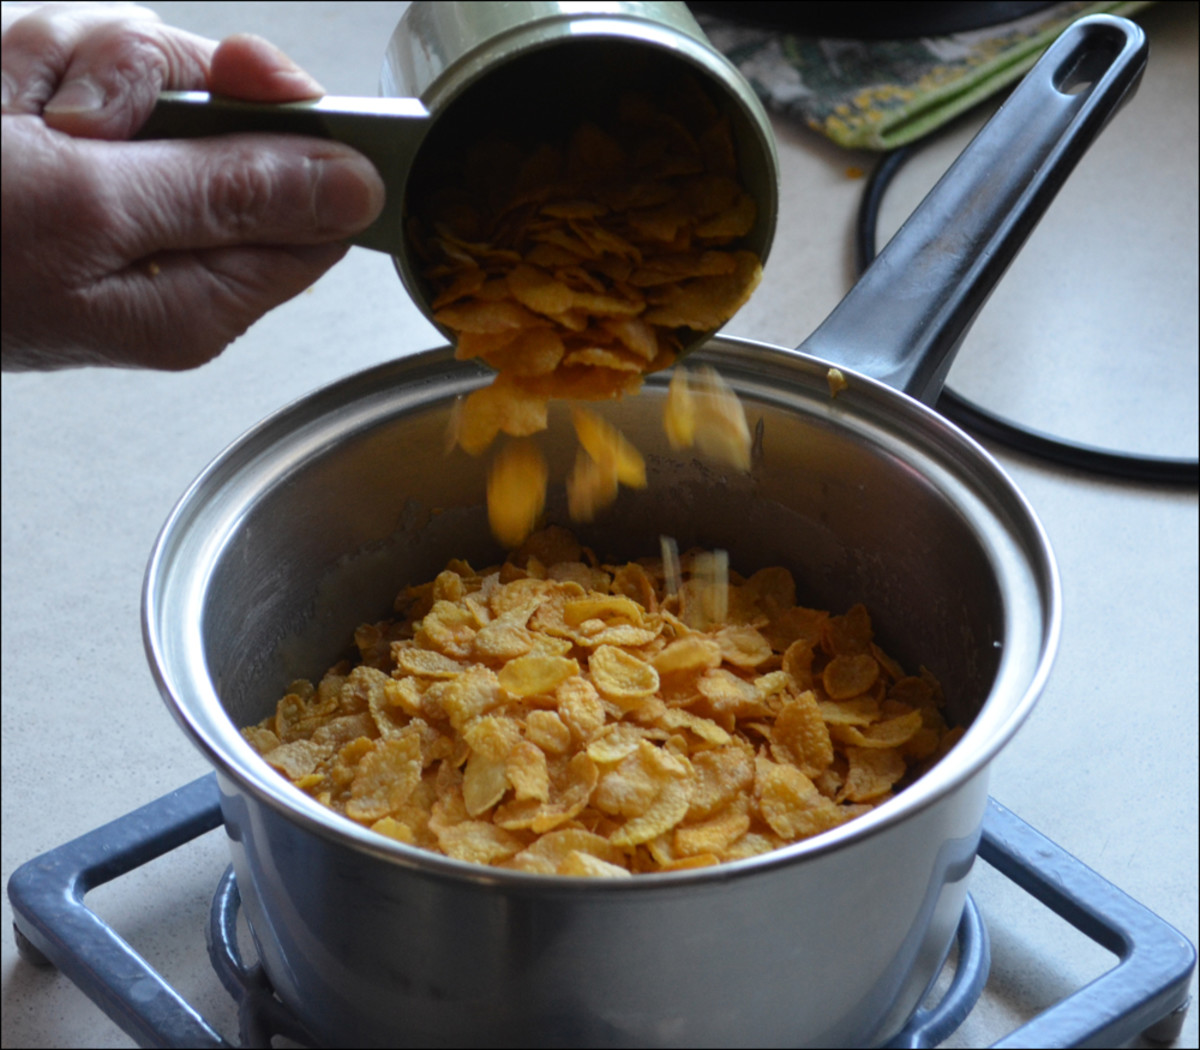 Corn Flakes being added to frothing ingredients to make the Honey Joy Biscuits.